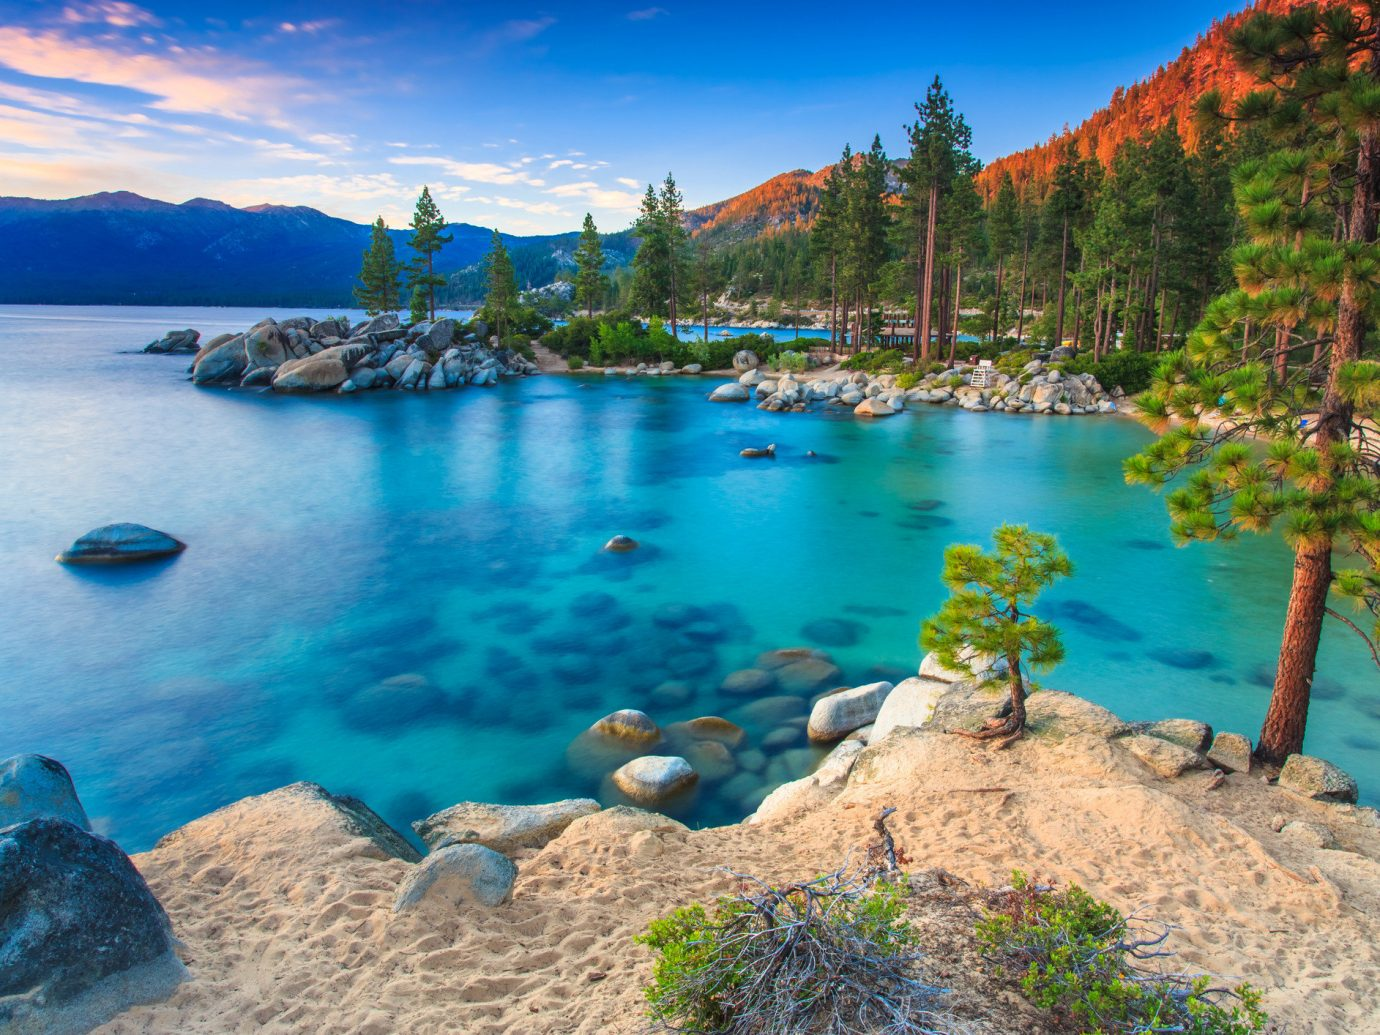 Beach Hotels Lakes + Rivers water outdoor sky Nature mountain rock body of water River Lake Sea surrounded bay canyon Lagoon shore